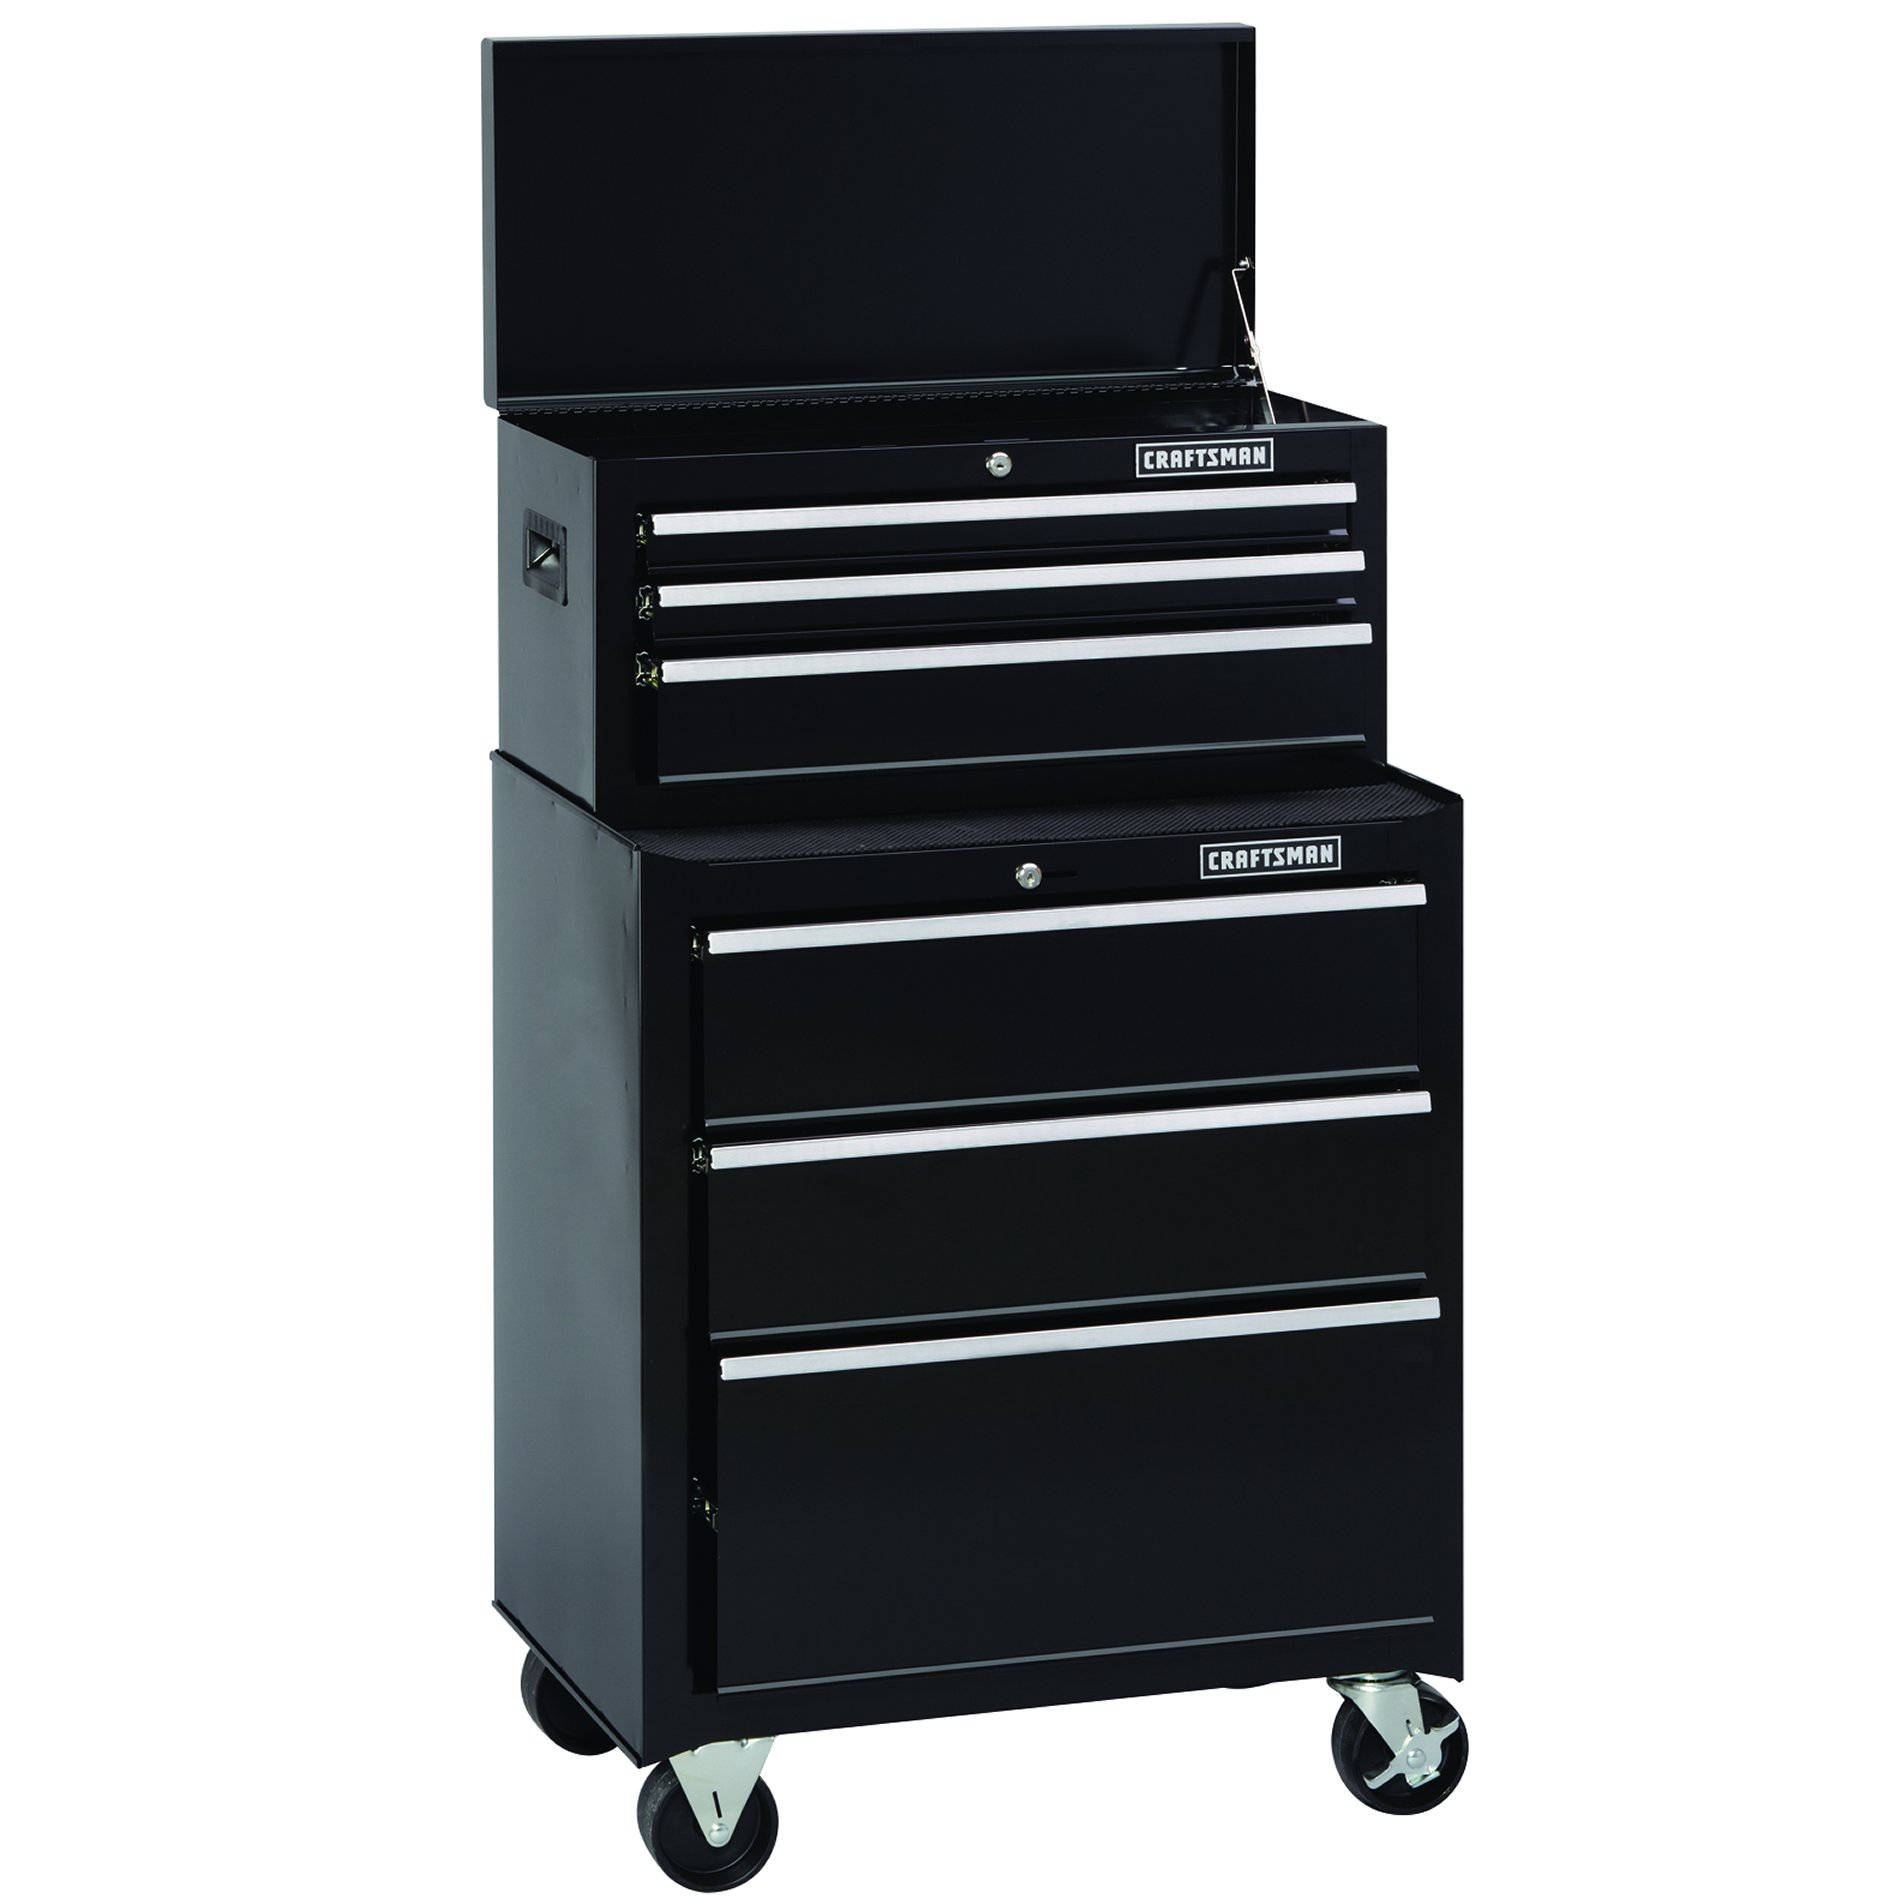 Craftsman 26 in. Wide 3-Drawer Standard Duty Ball-Bearing Rolling Cabinet - Black